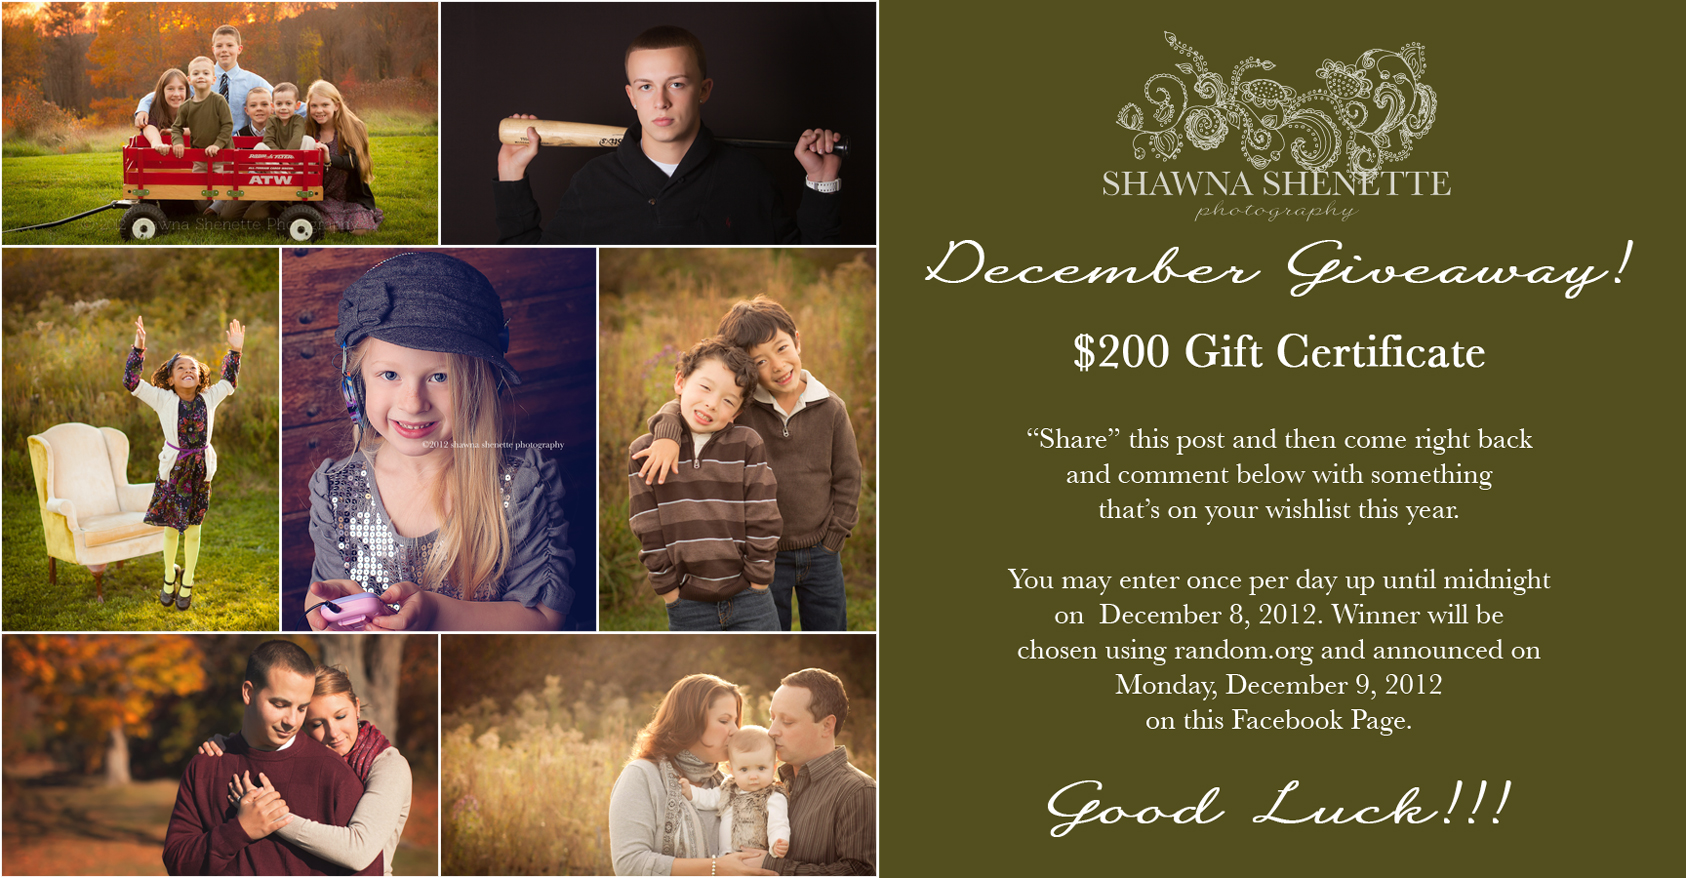 MA FAMILY PHOTOGRAPHER CHILD PHOTOGRPHER OUTDOOR PHOTOGRAPHY HOLIDAY CONTEST GIFT CERTIFICATE CHILDREN STUDIO FAMILY WEDDINGS